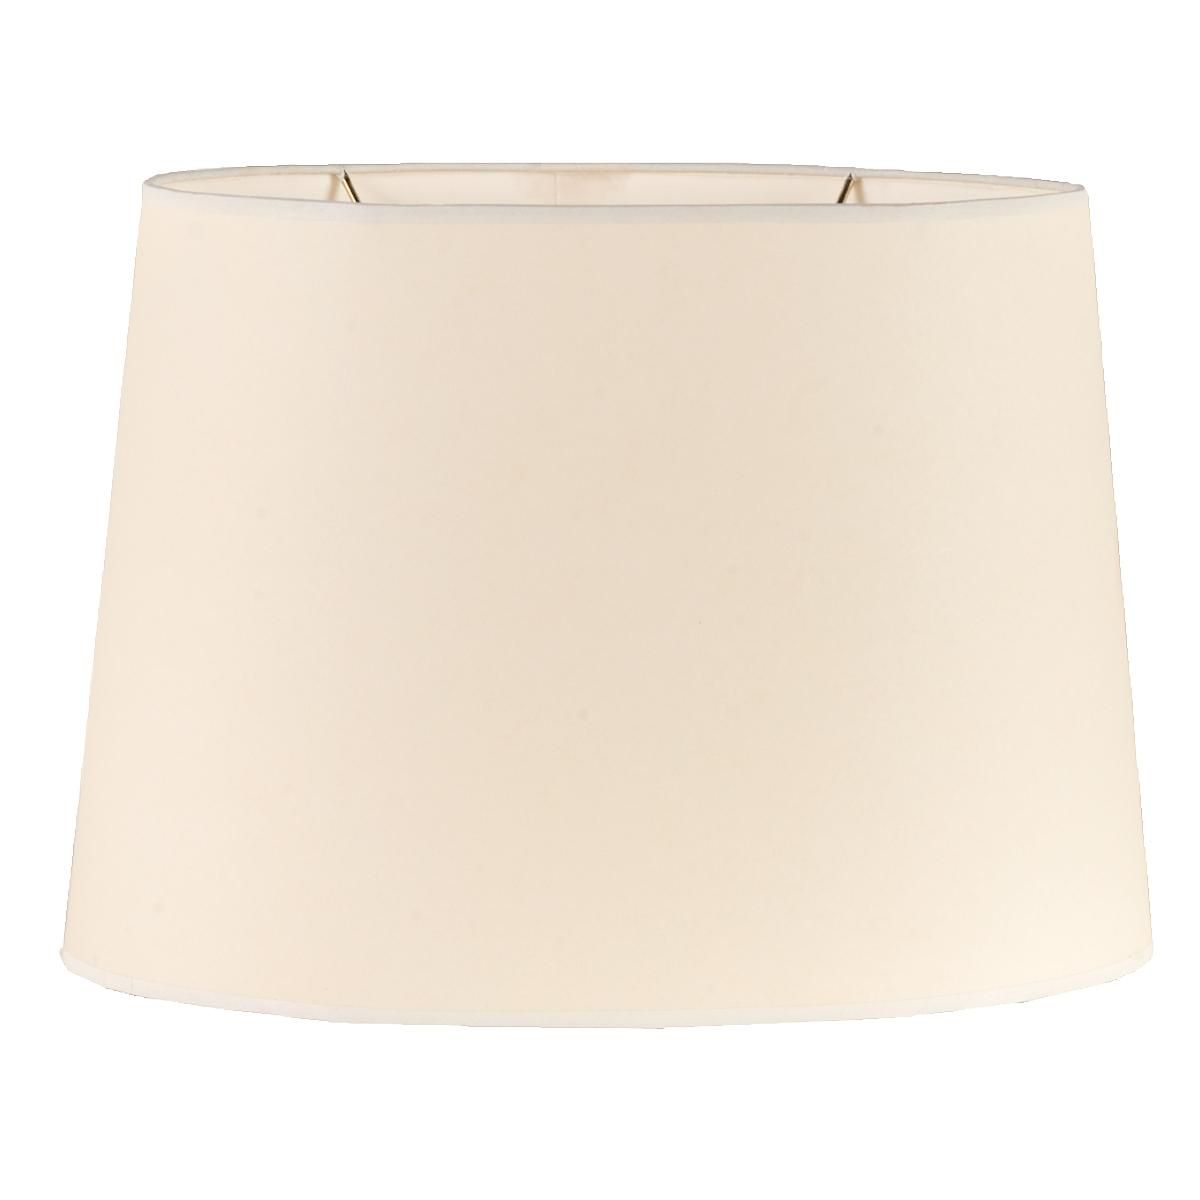 12 Parchment Oval Drum Shade Drum Shade Shades Lamp Shades